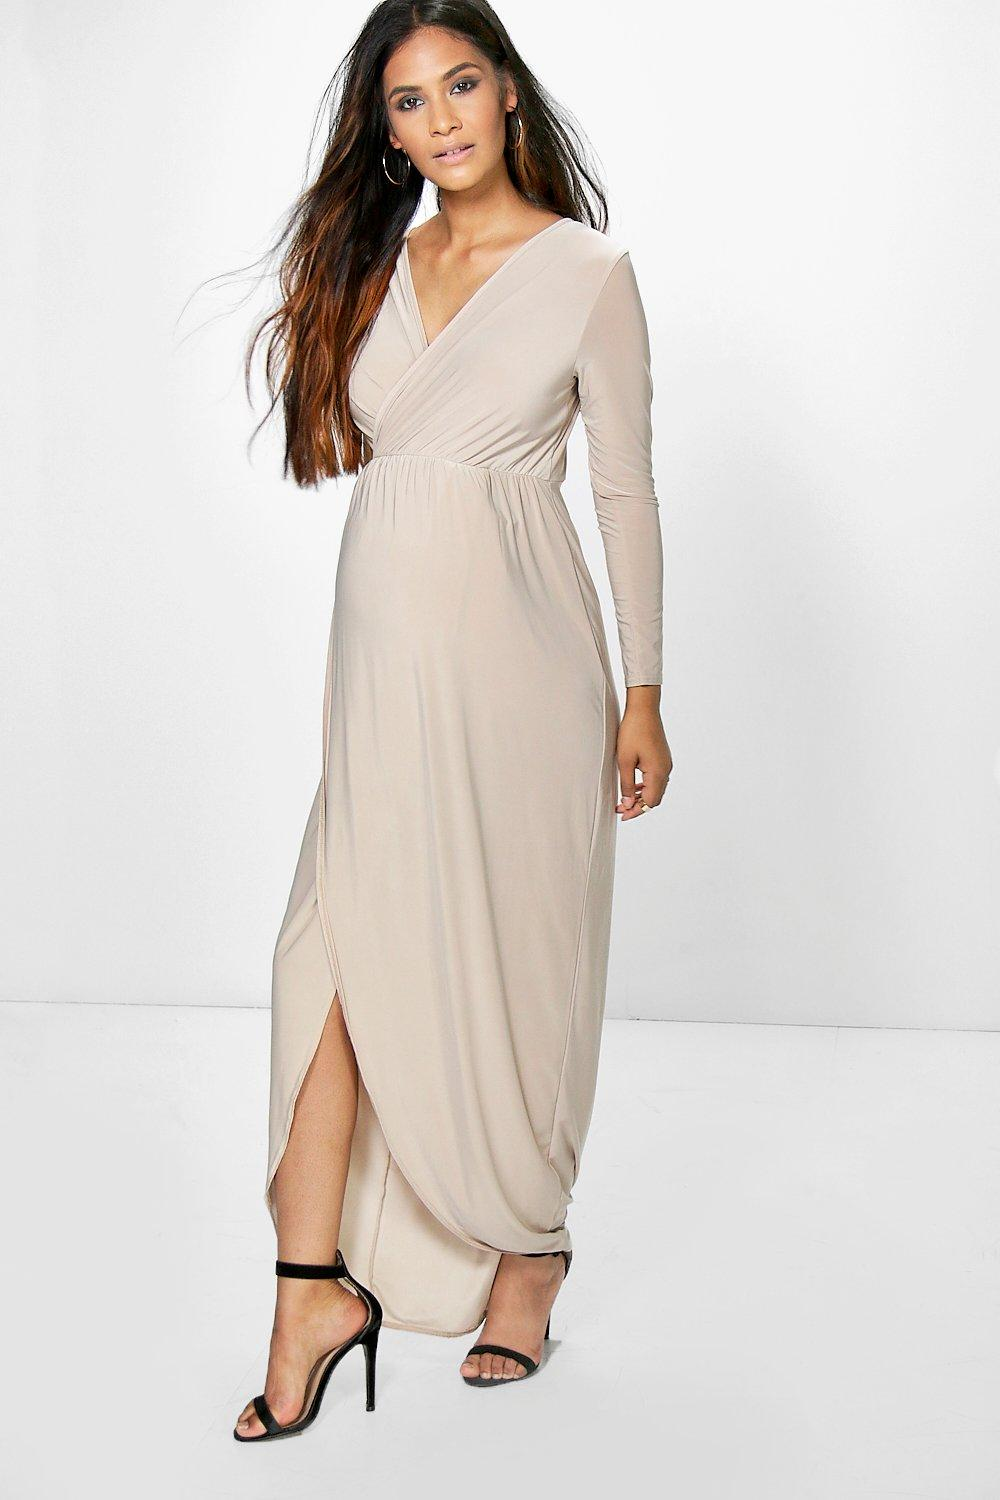 Ripe Maternity has a range of beautiful maternity dresses, including maternity maxi dresses and formal dresses online. Shop Maternity Dresses Online Today.